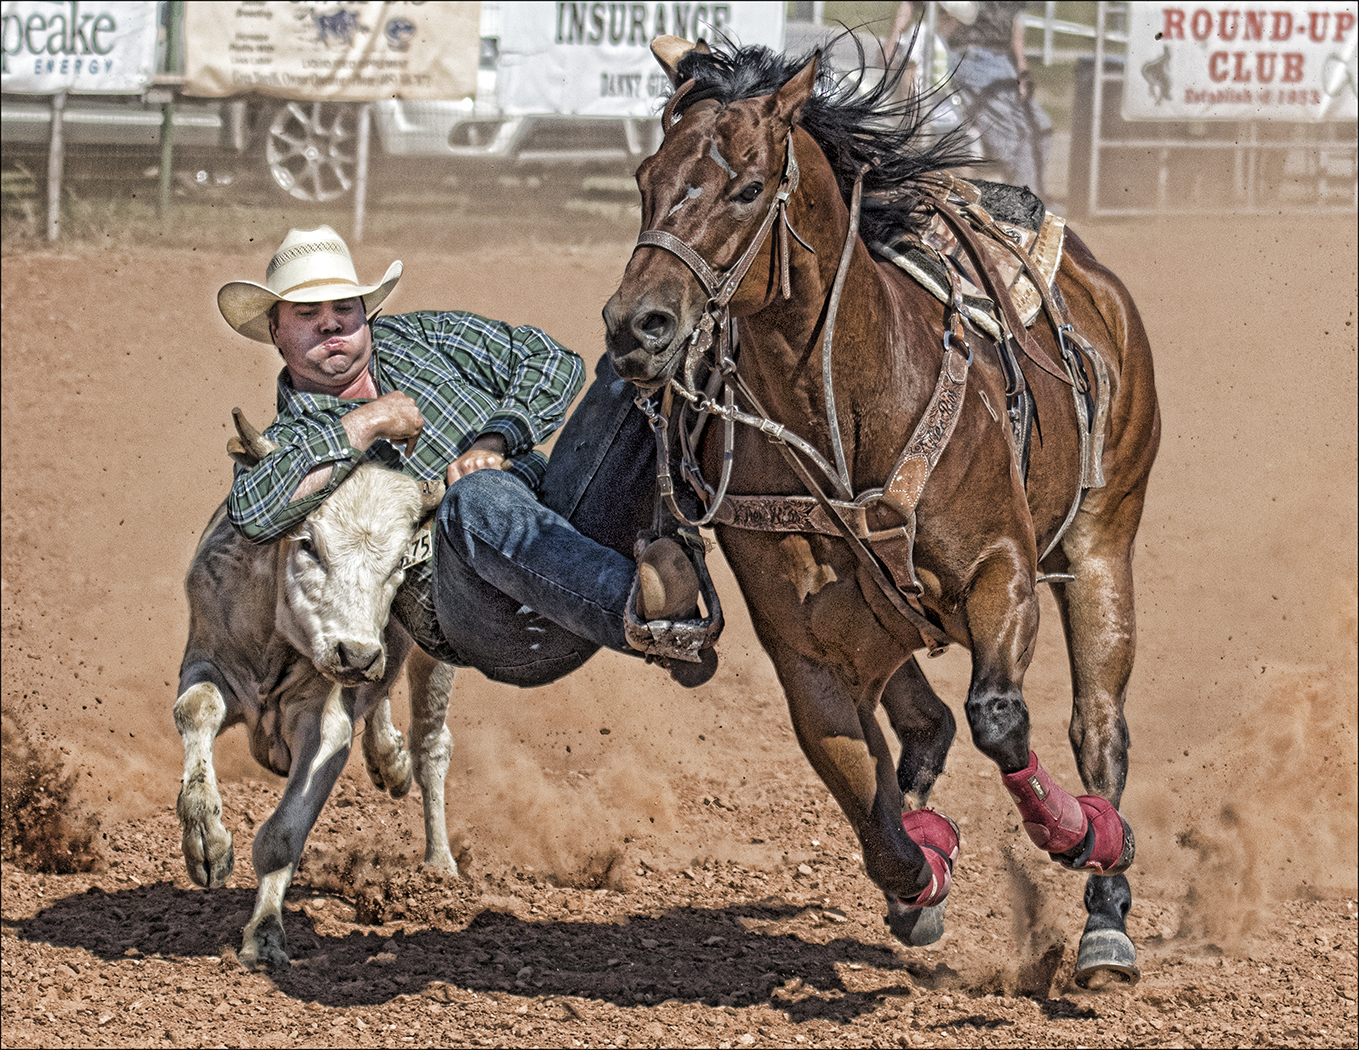 Hanging On With One Stirrup, Carol McCreary, Oklahoma CC, 1st Place